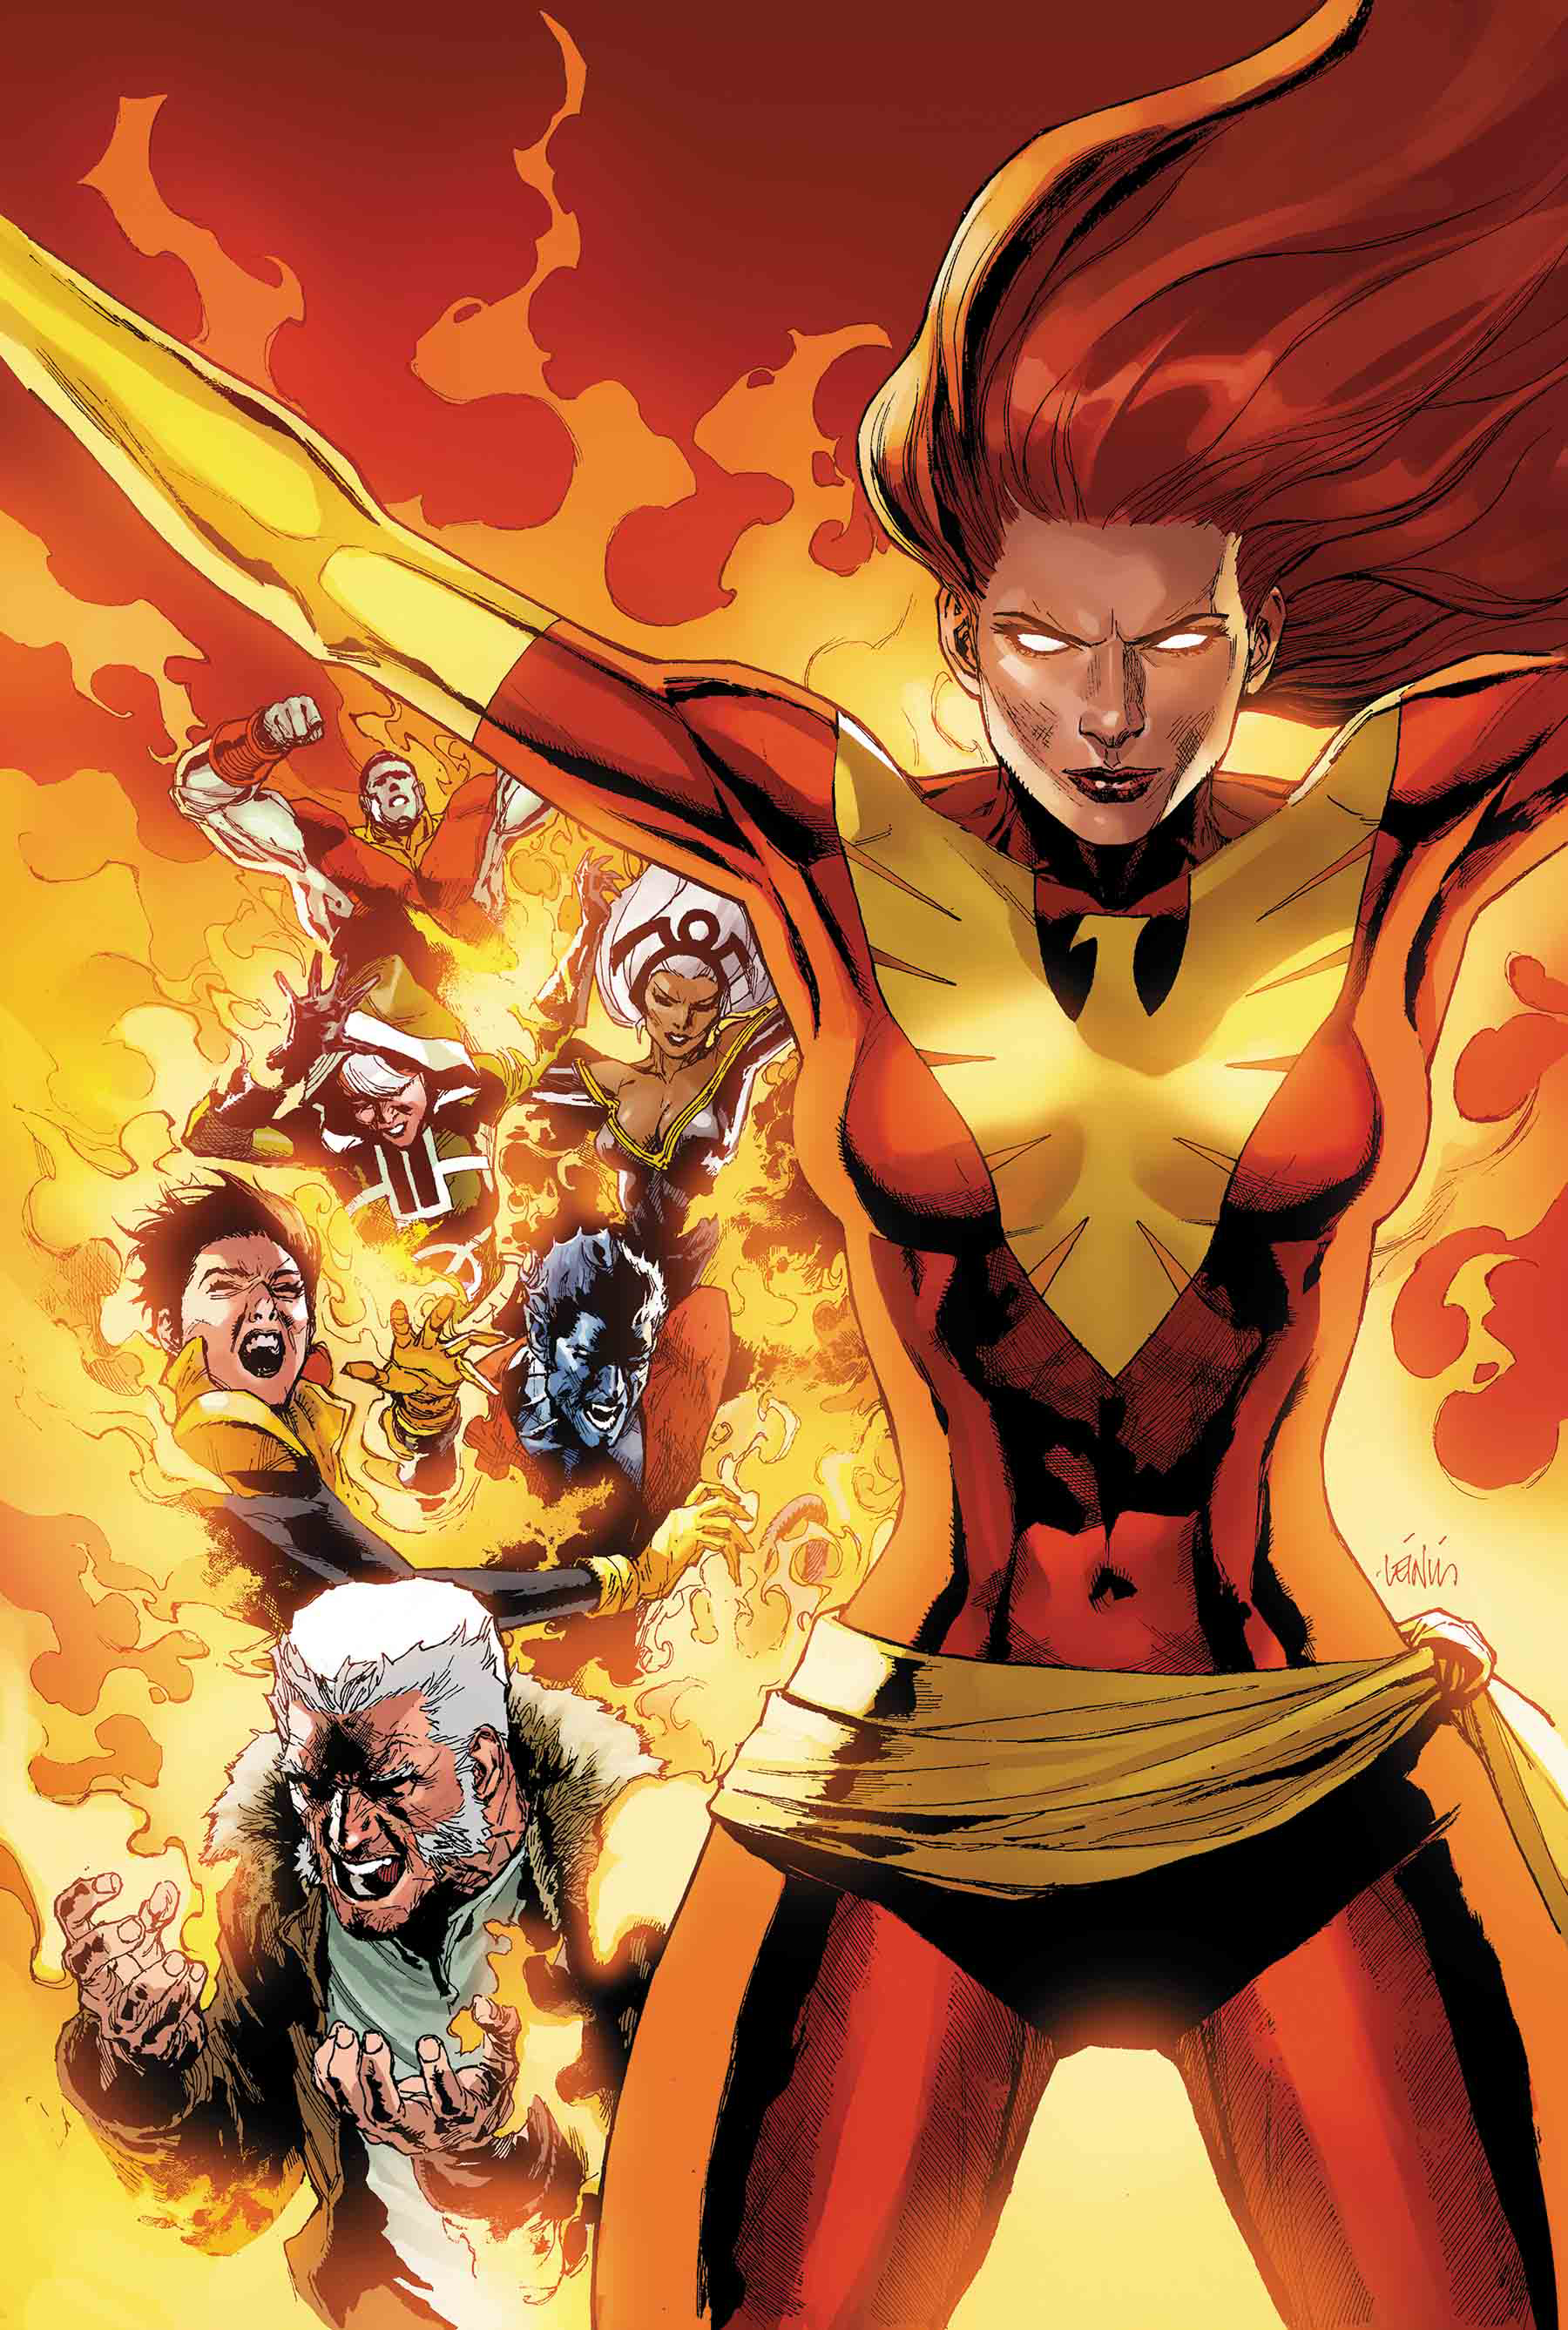 PHOENIX RESURRECTION BY YU POSTER